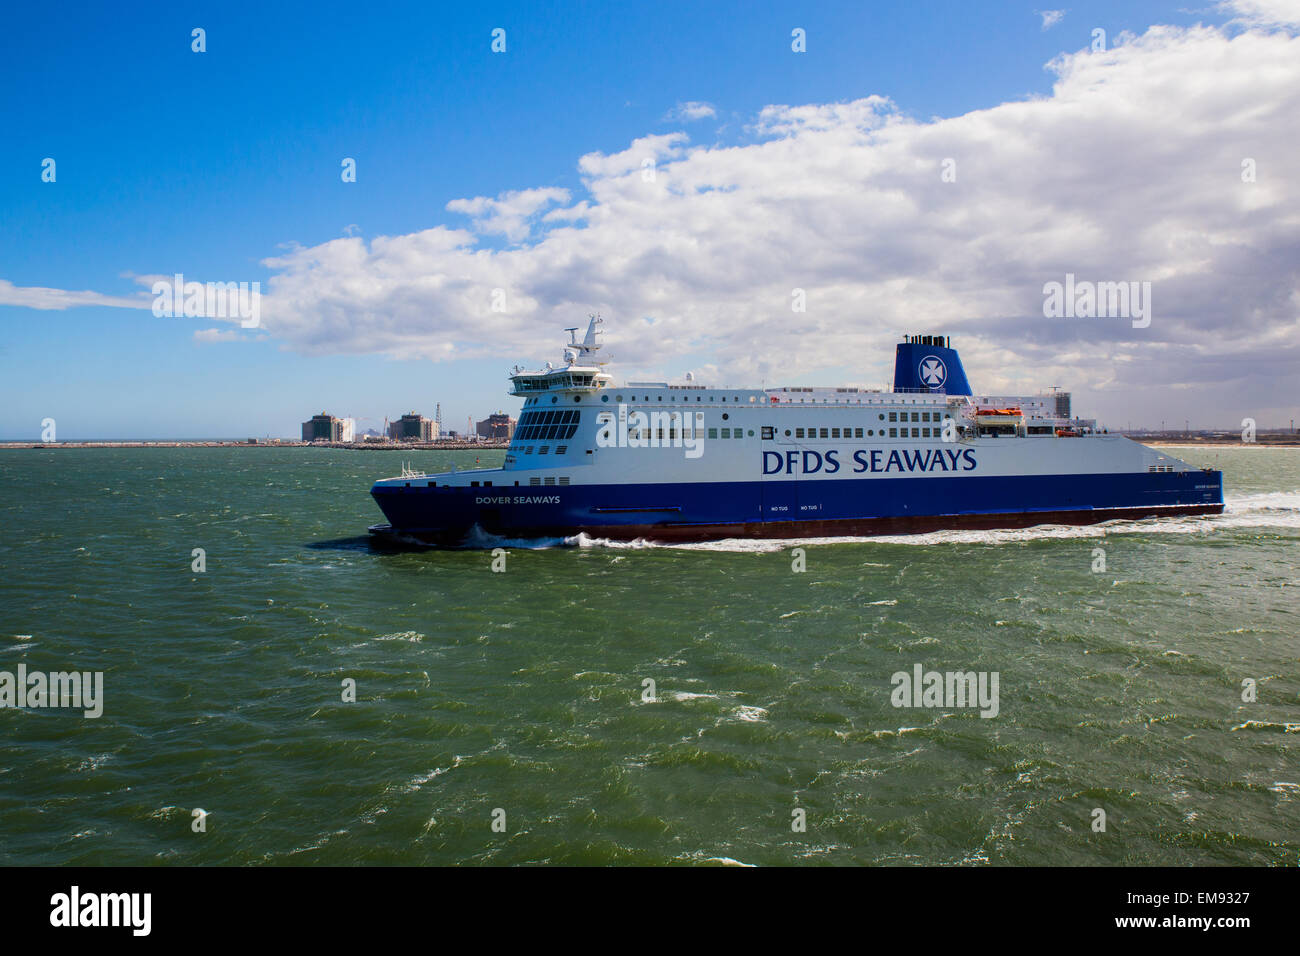 Cross channel ferry between Dover and Dunkirk - Stock Image